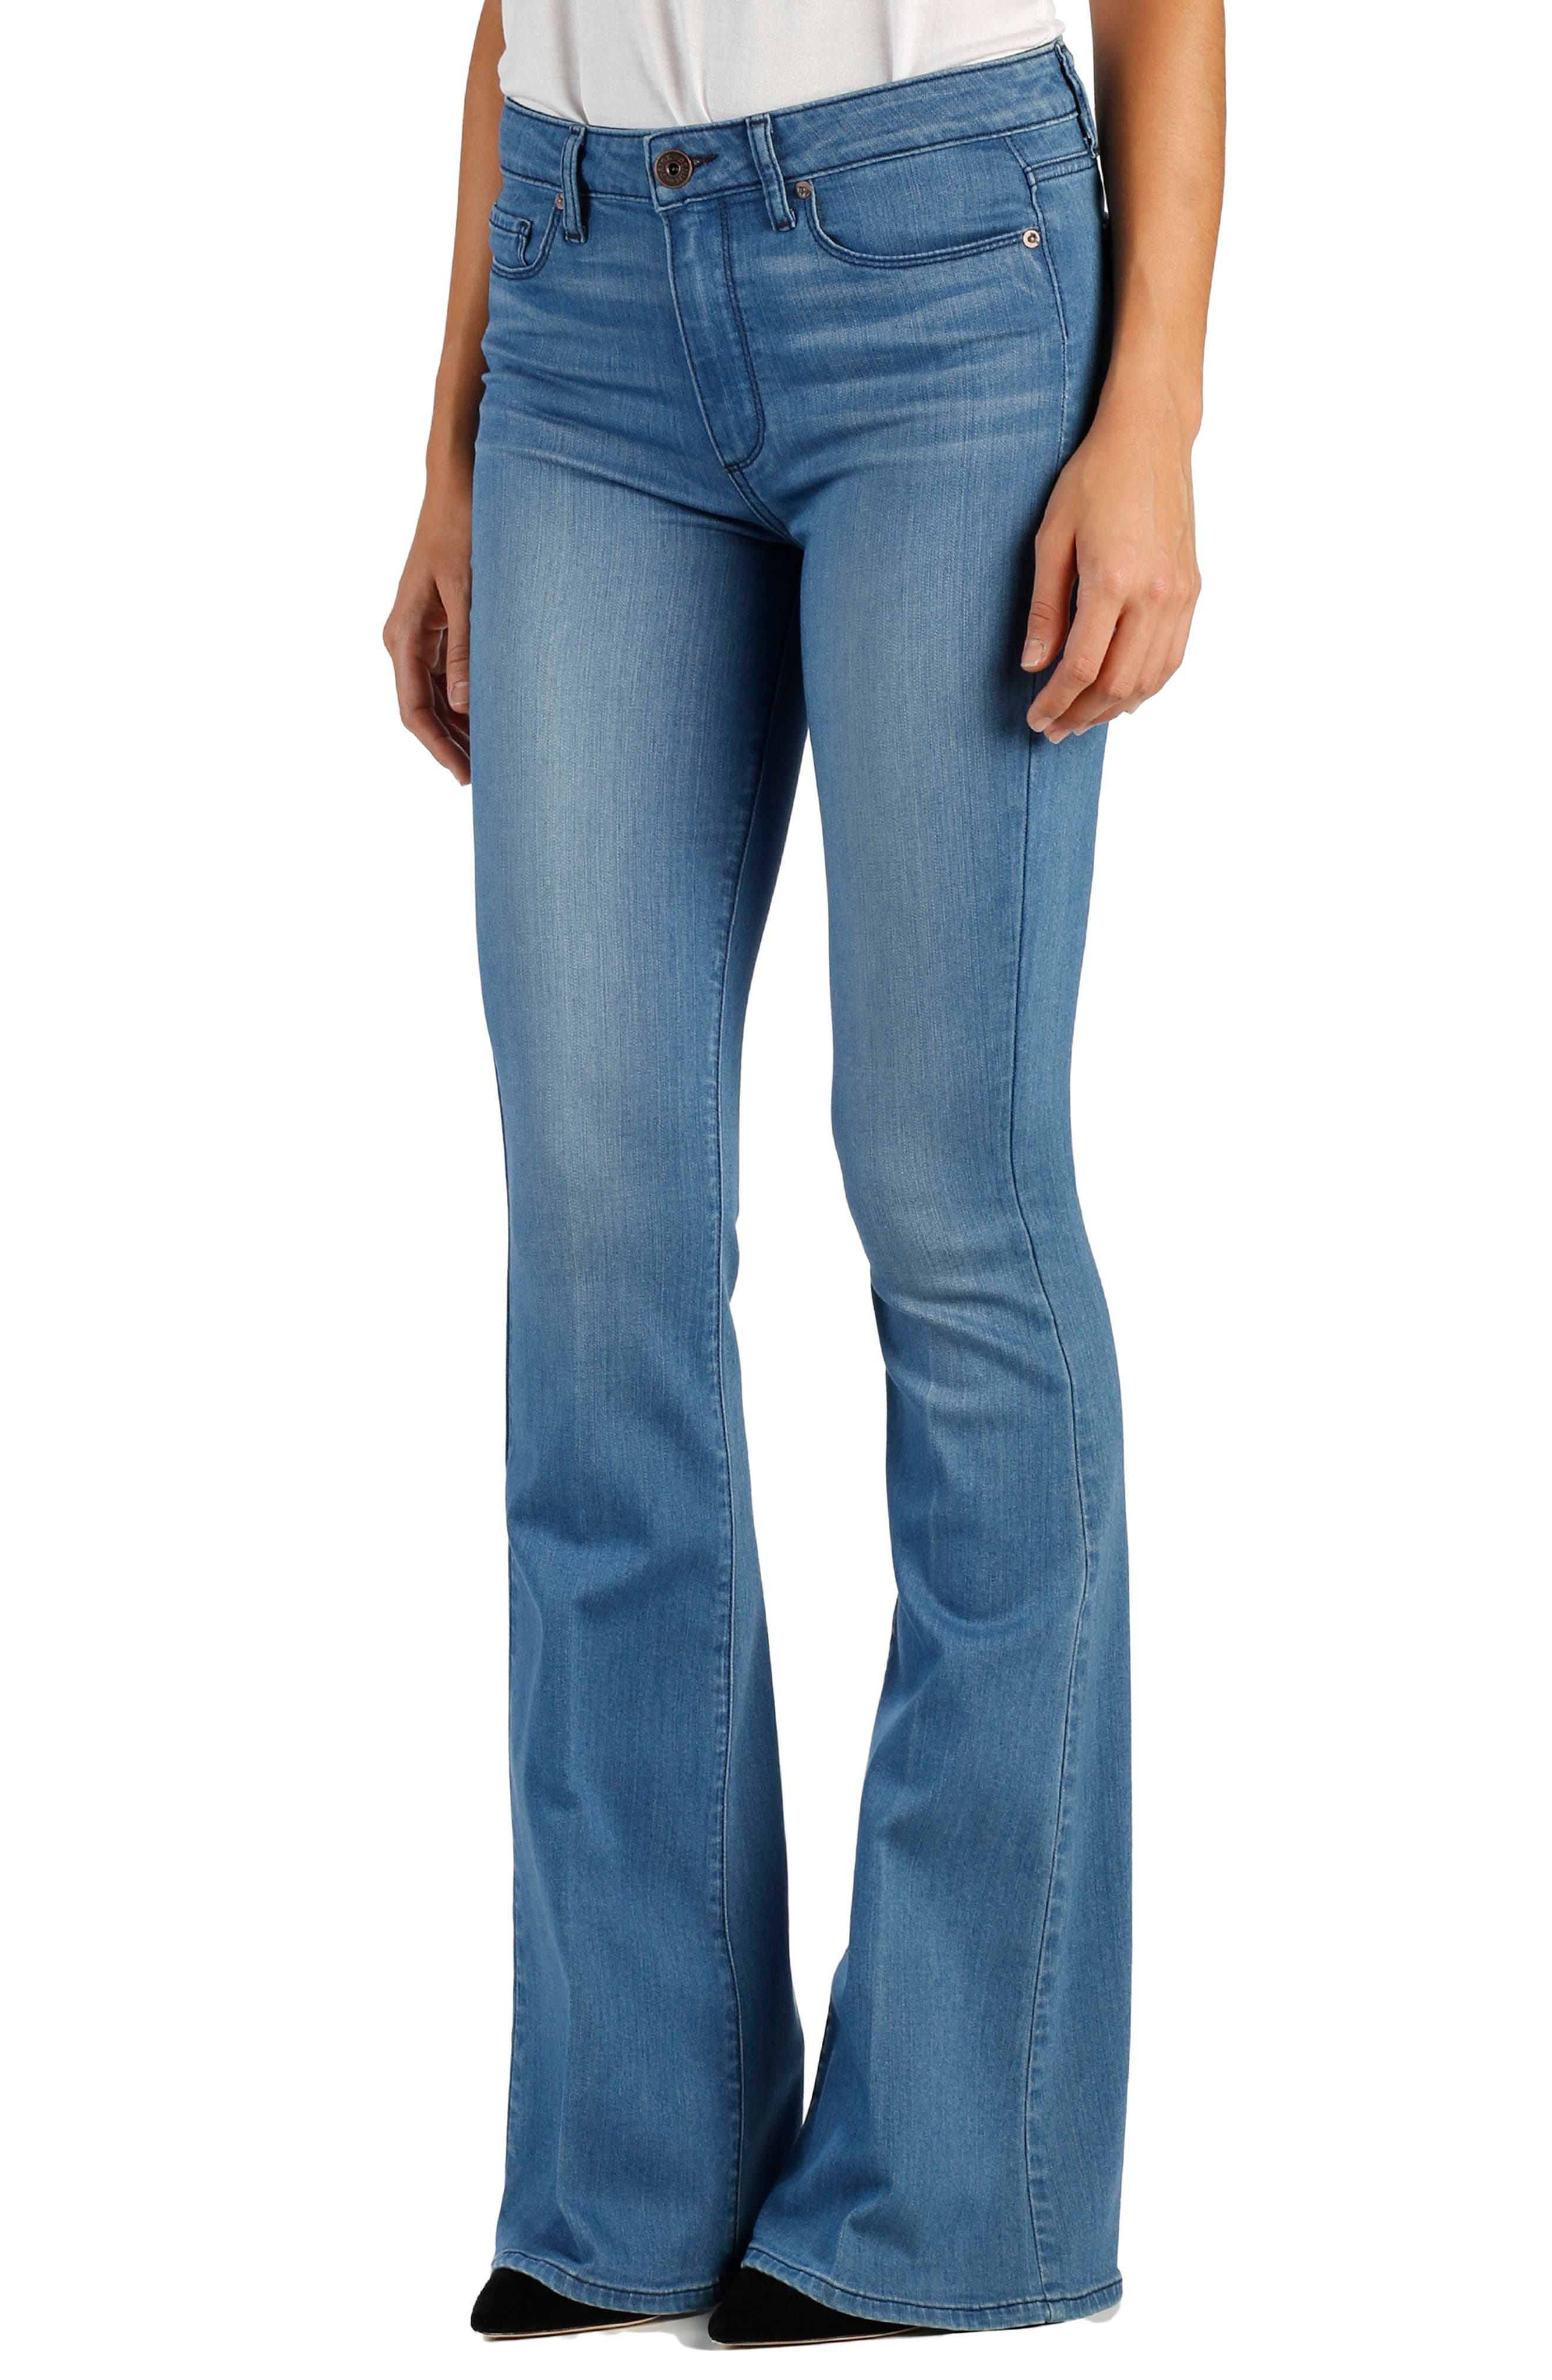 Transcend - Bell Canyon High Waist Flare Jeans,                             Main thumbnail 1, color,                             Harbor